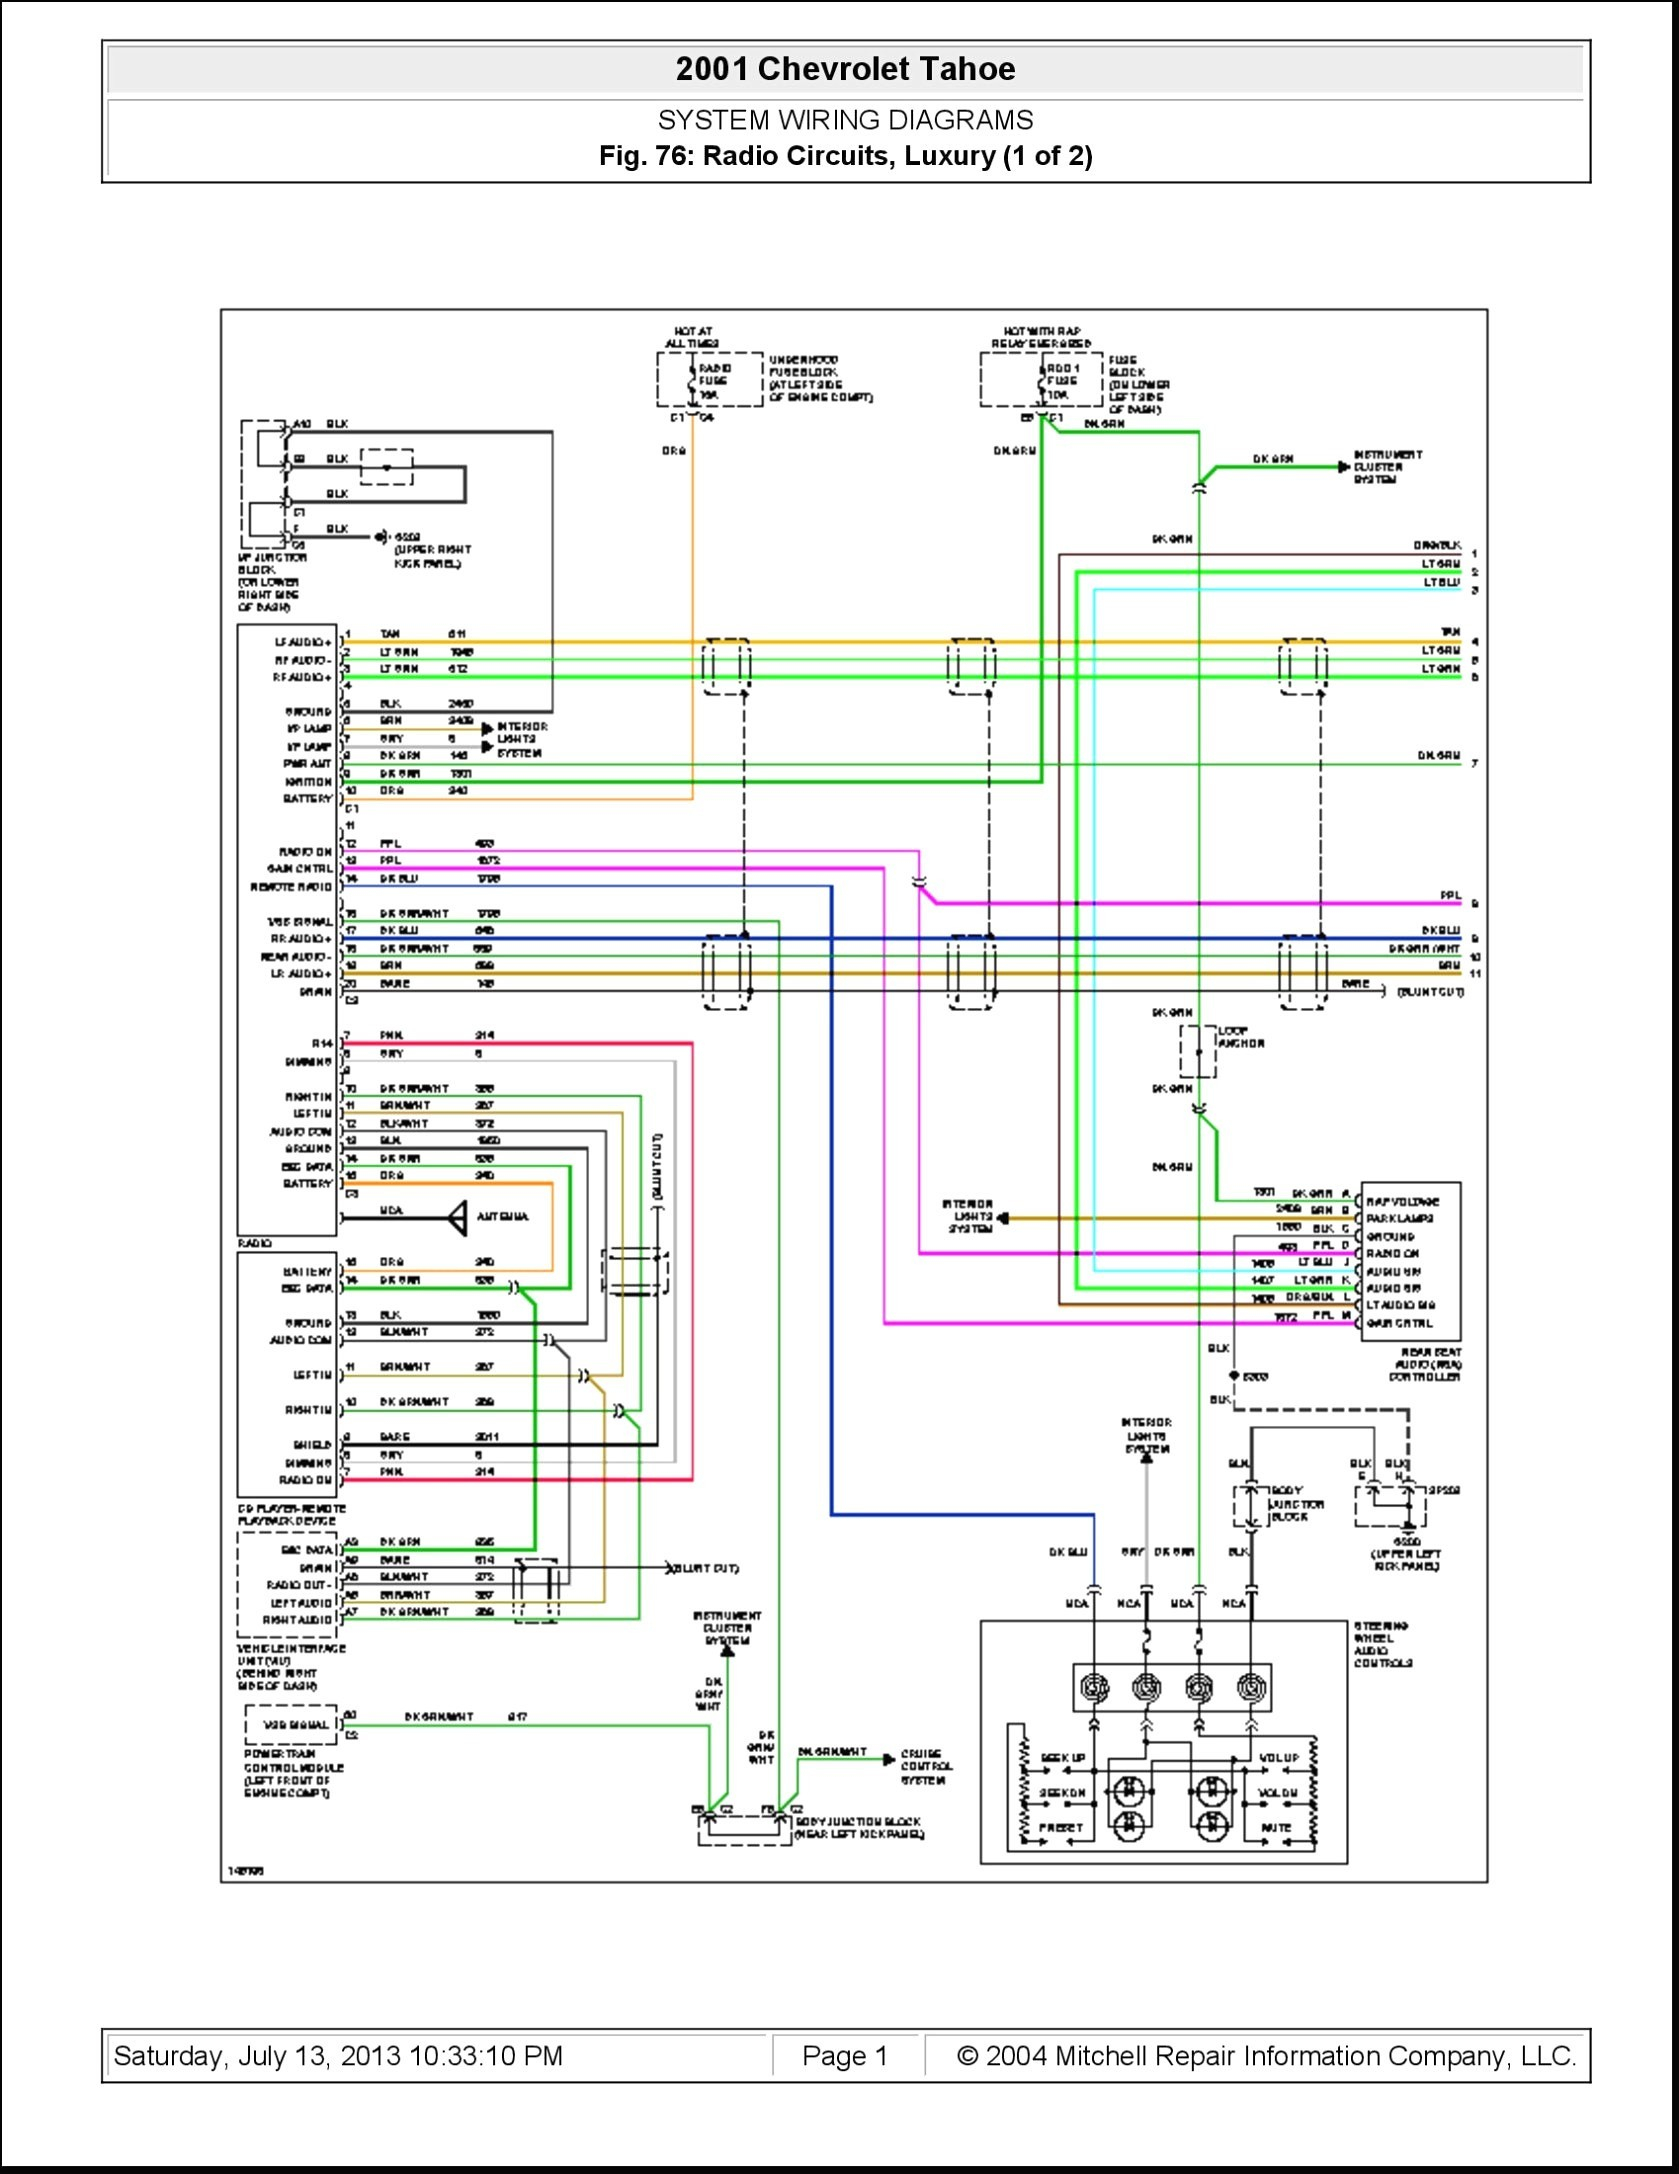 hight resolution of 2004 chevrolet tahoe wiring harness wiring diagram paper 2002 tahoe radio wiring harness diagram tahoe wiring harness diagram